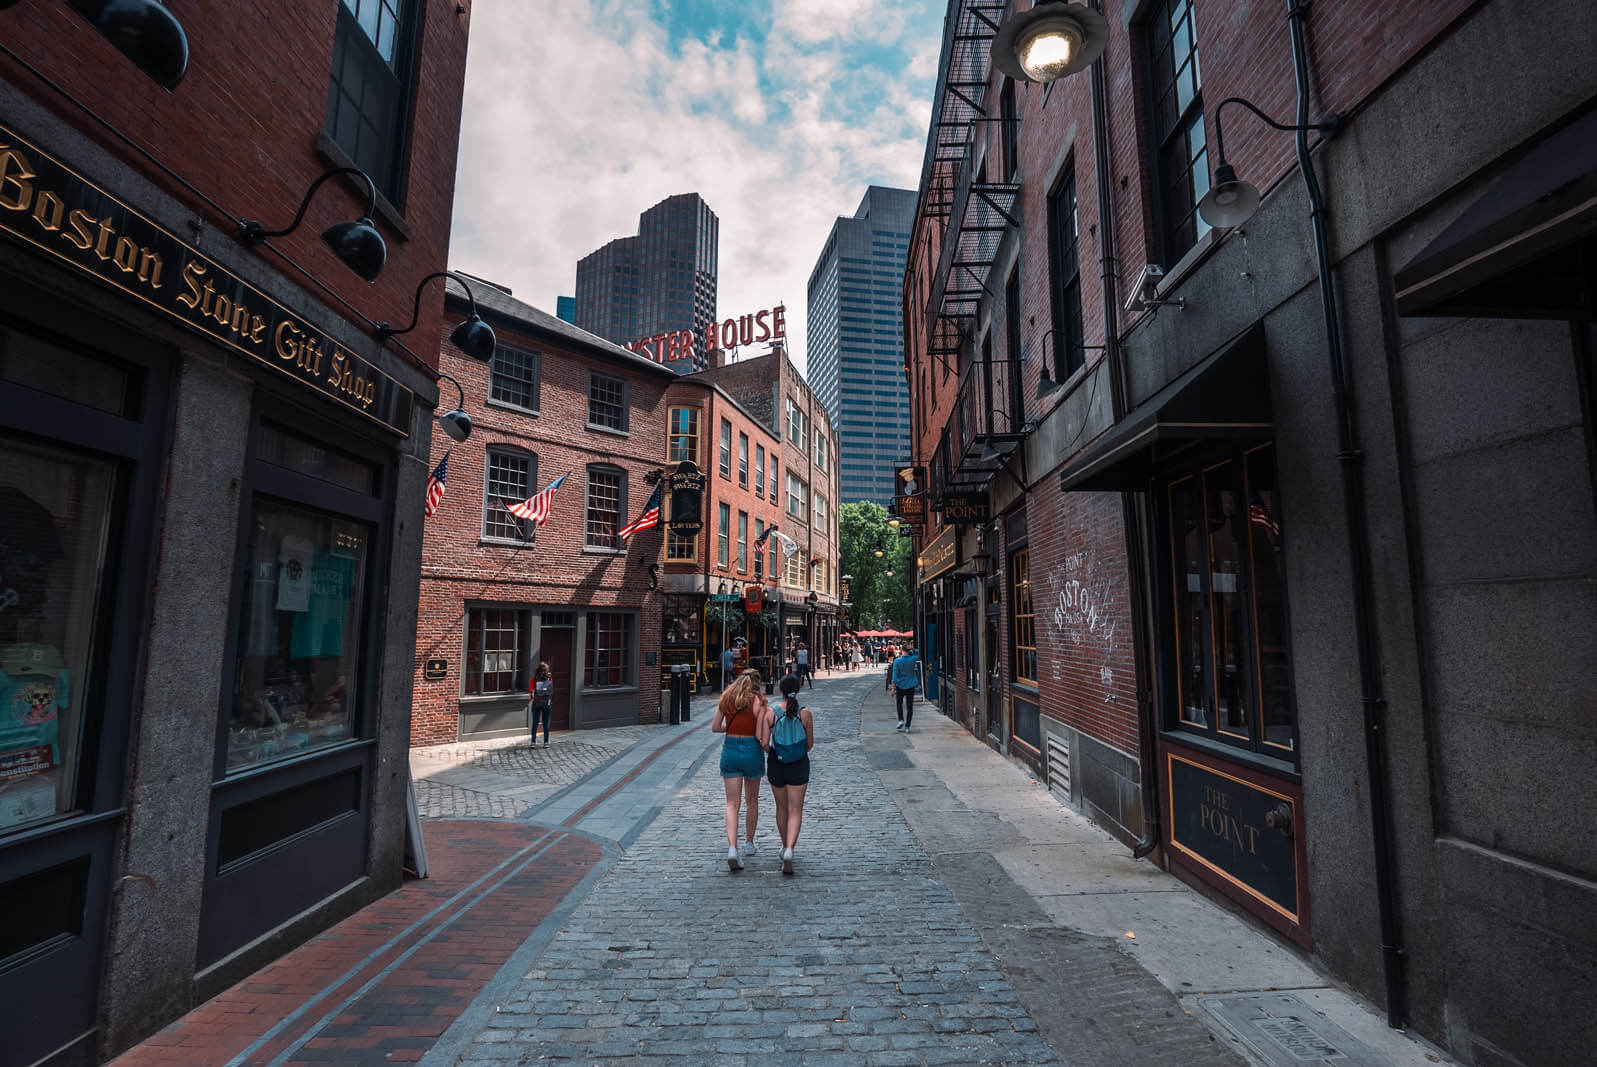 Historic alleyway where the old bars and taverns are in Bostons North End